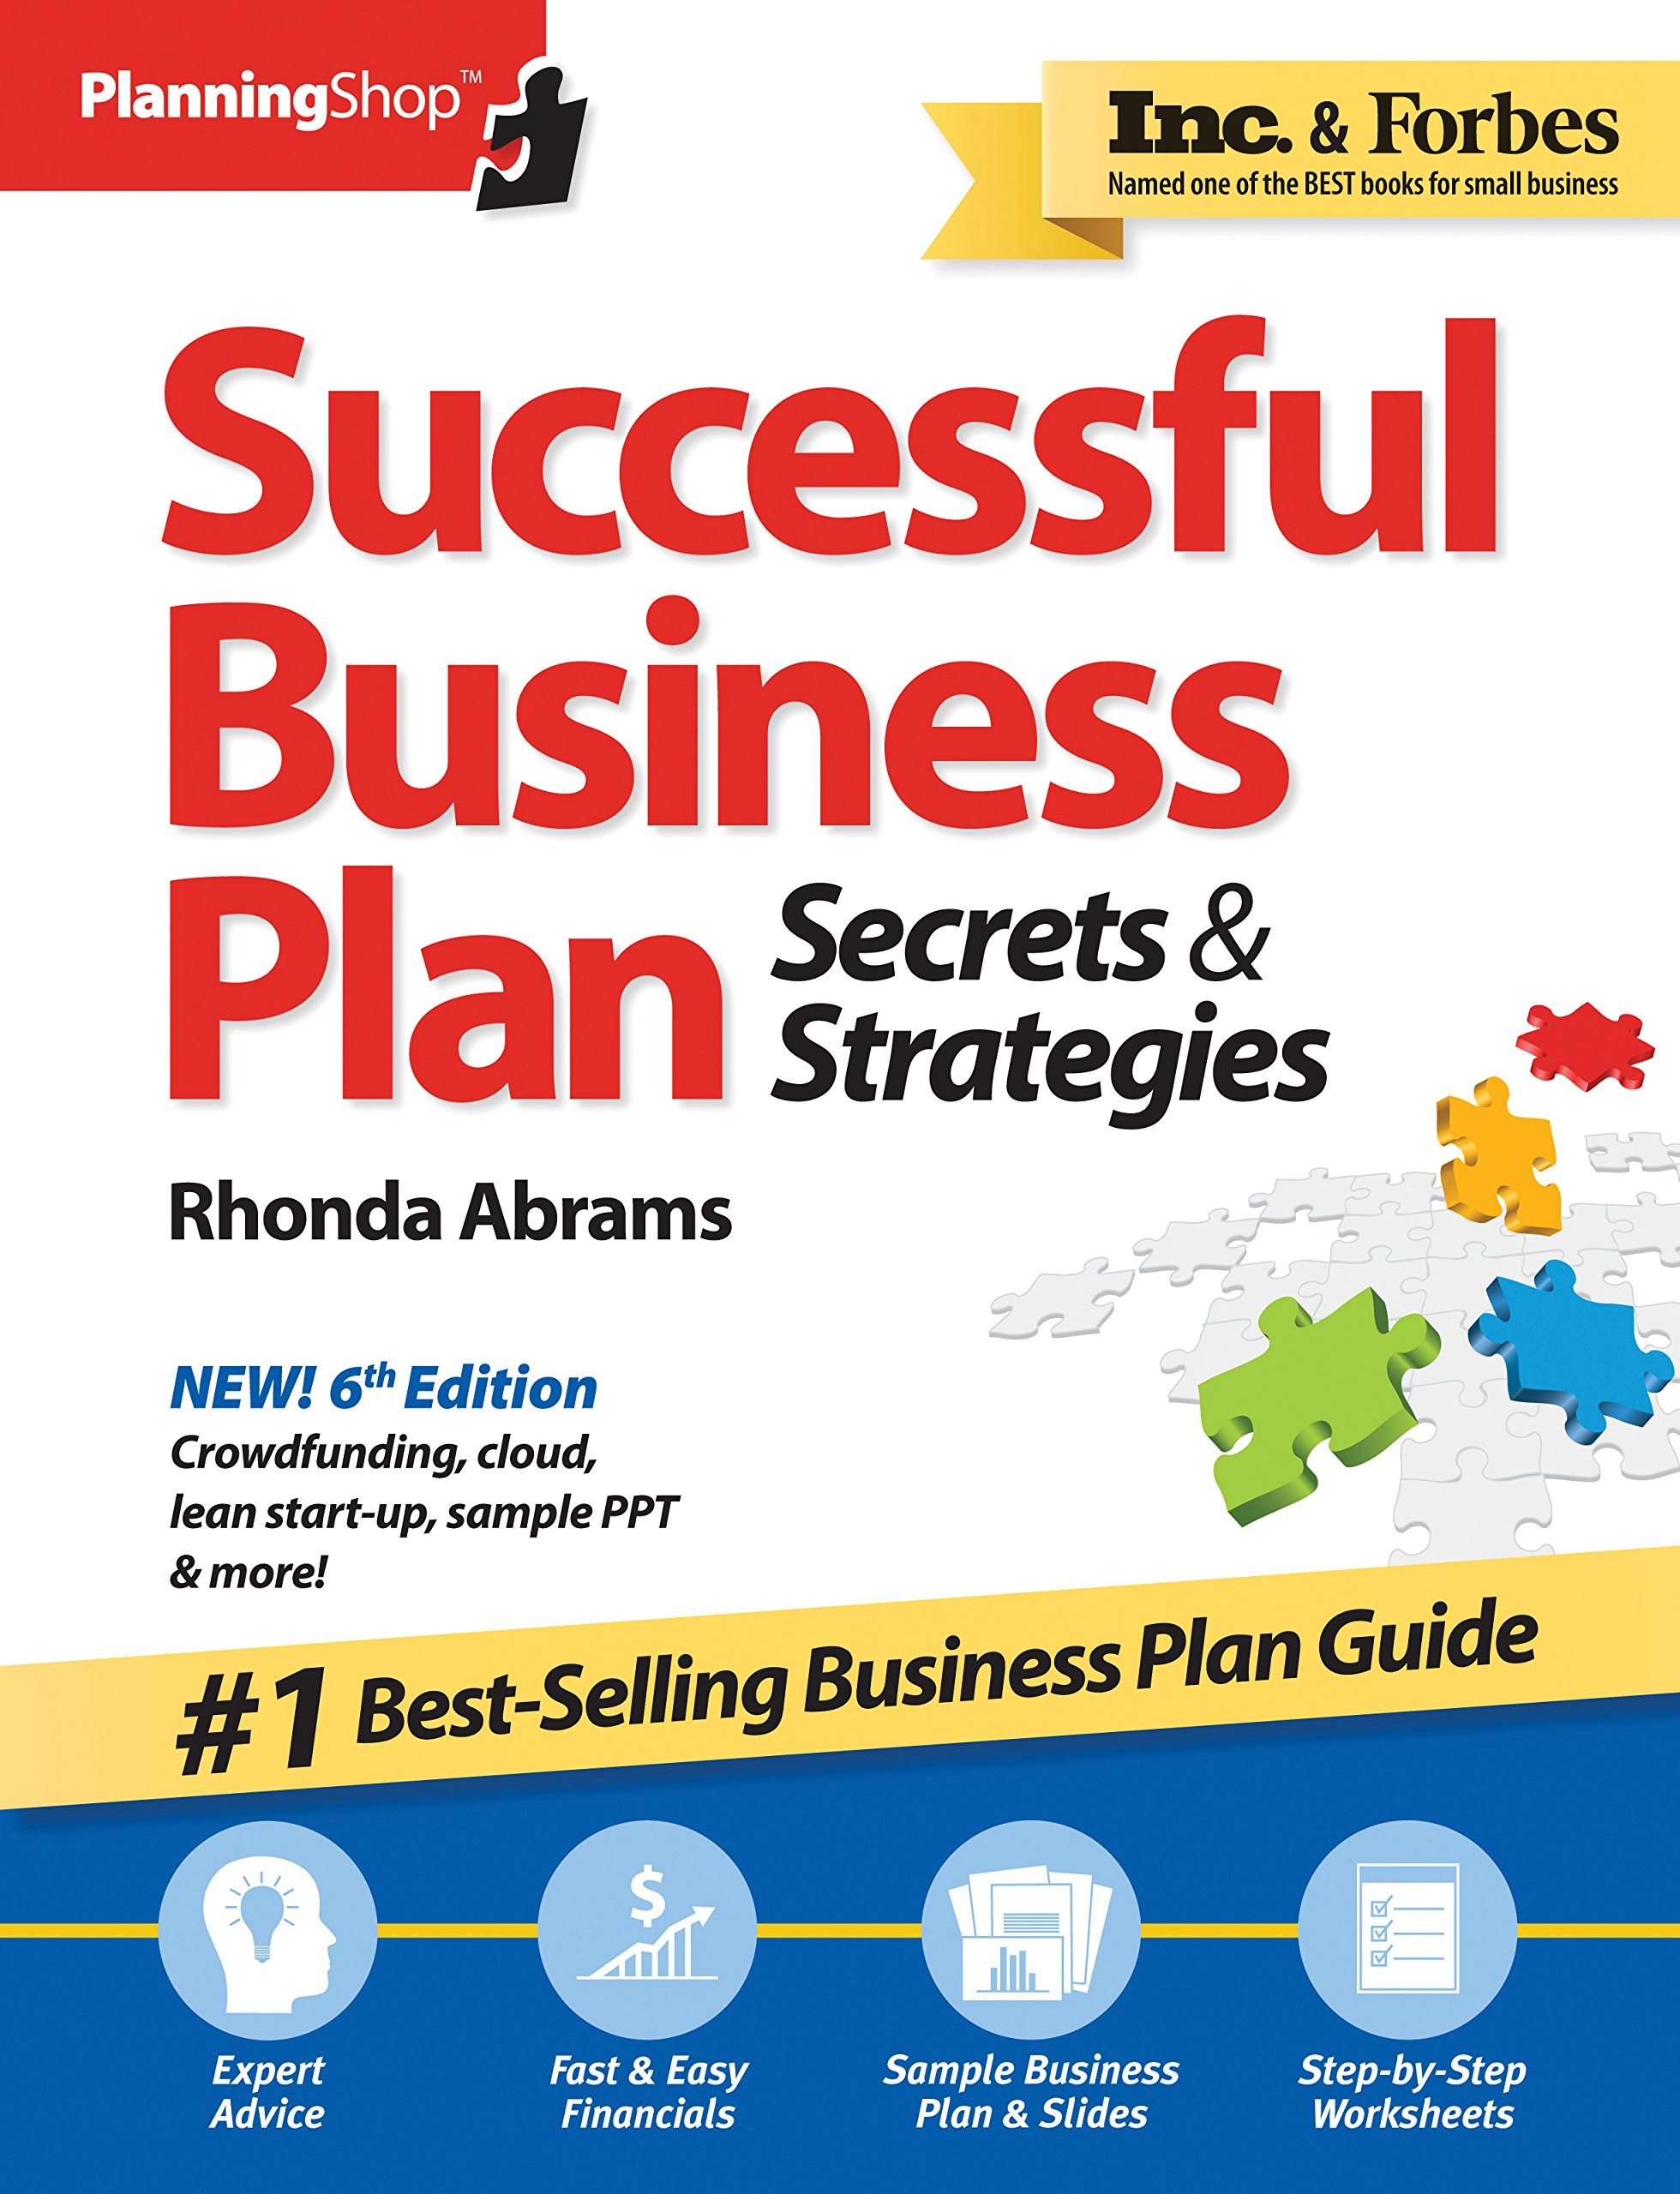 Image OfSuccessful Business Plan: Secrets & Strategies, America's Best-Selling Business Plan Guide!